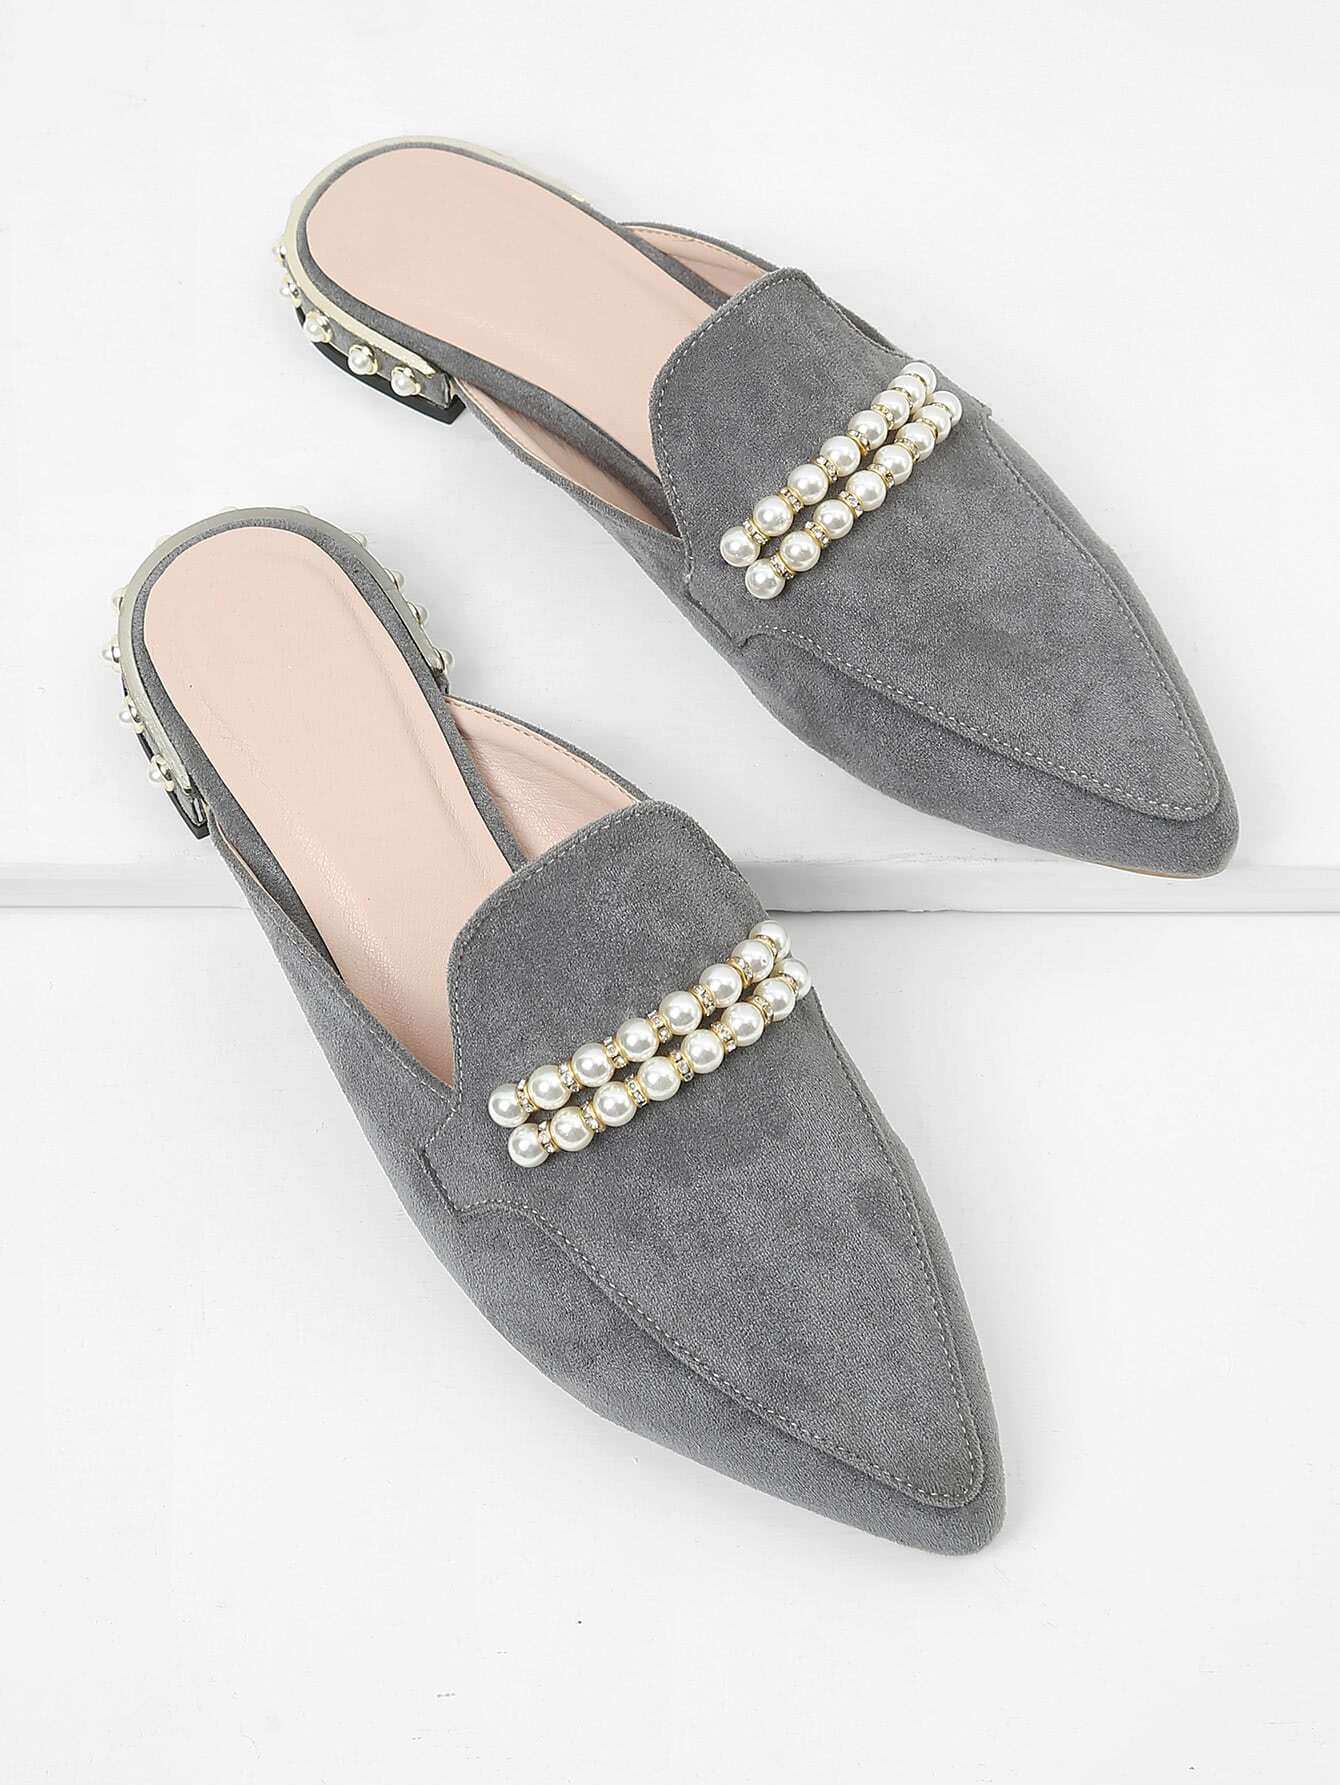 Faux Pearl Pointed Toe Flats pointed toe faux leather flats